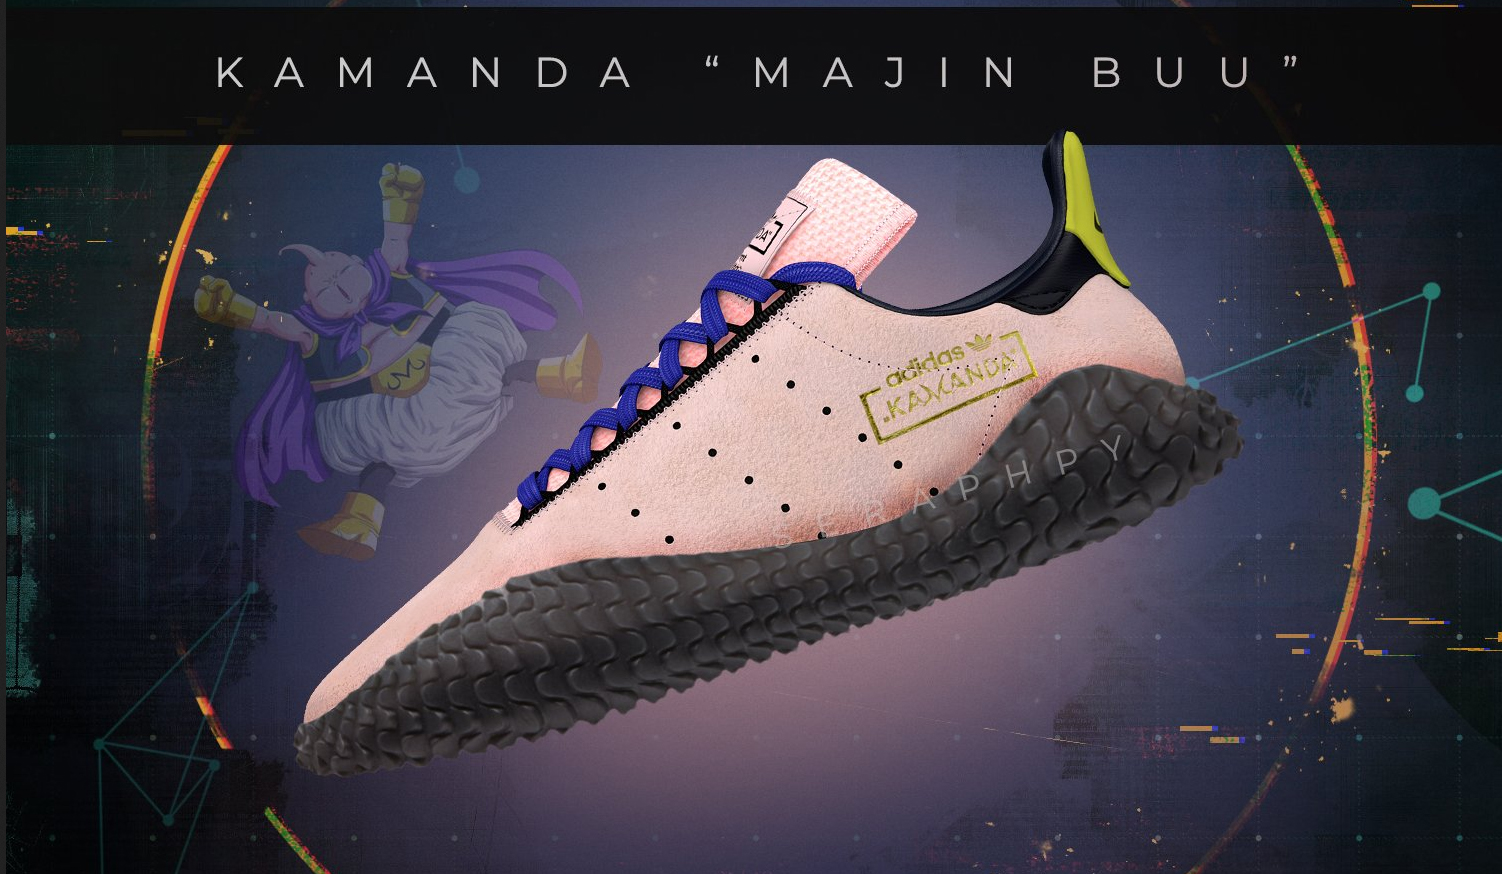 The Villainous Majin Buu will be getting his own adidas silhouette for the  upcoming Dragon Ball Z x adidas Originals collection next fall. 905a69469